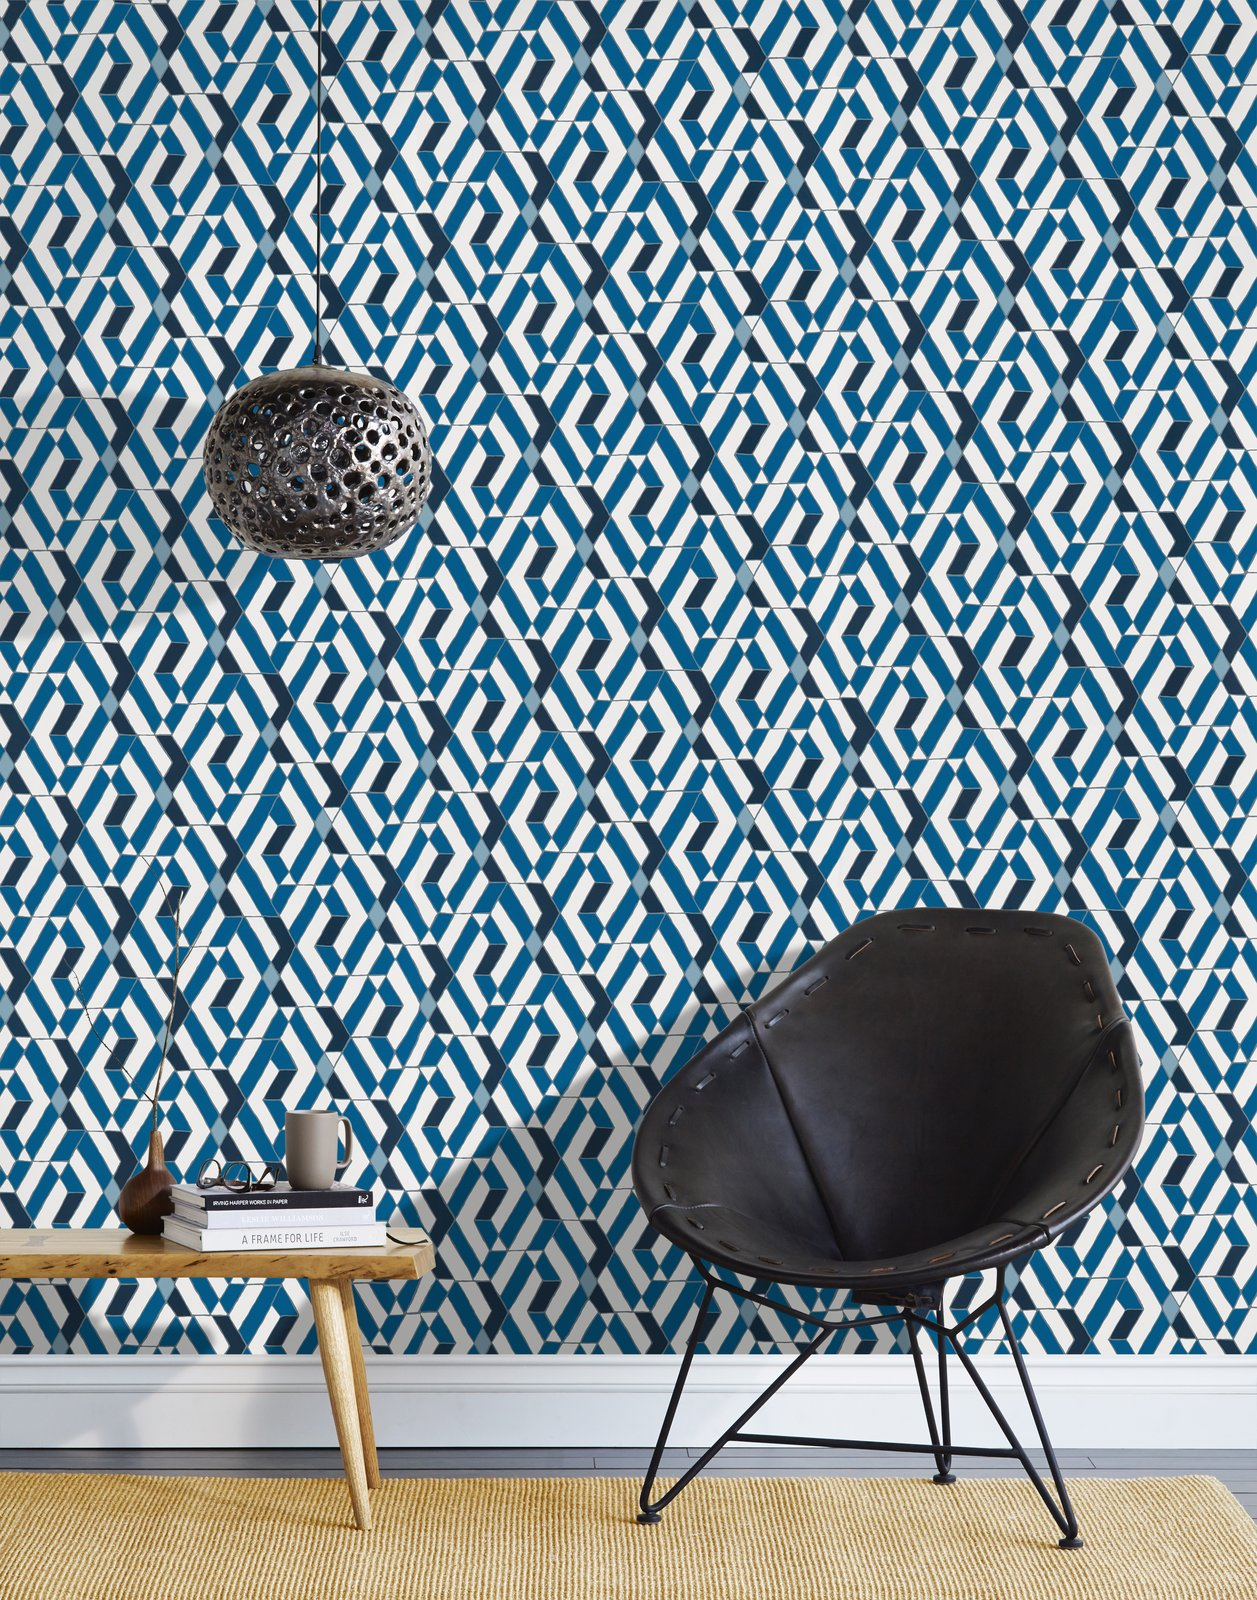 We partnered with Hygge & West to produce a collection of modern artisan wallpaper that's screenprinted by hand in Chicago, IL. Heath designed wallpaper that combines a clean graphical style with hand-drawn lines in a palette inspired by our glazes in four patterns in four colorways: Arcade, Quilt, Slice, and Strike.  Shop the collection here: http://www.heathceramics.com/wallpaper   #heath #heathceramics #heathxhyggeandwest #wallpaper #color #handdrawnlines #blue #quilt  Photo 33 of 42 in Wallpaper That Fixes Walls